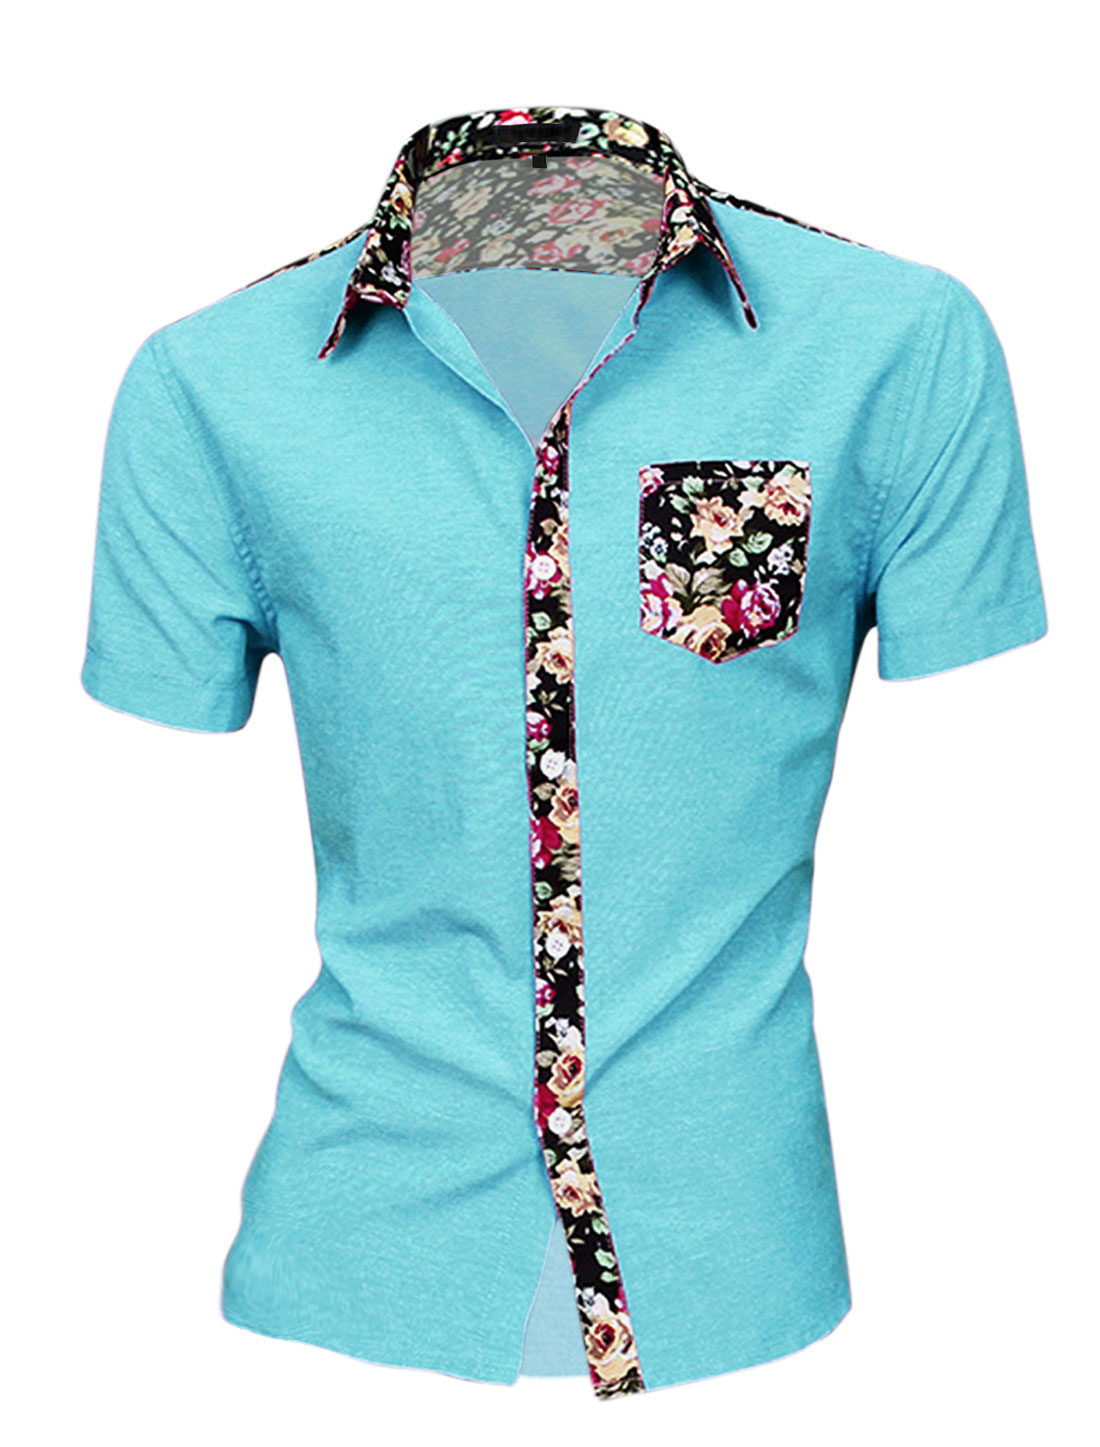 Men Short Sleeve Floral Print Button Down Leisure Shirt Sky Blue M